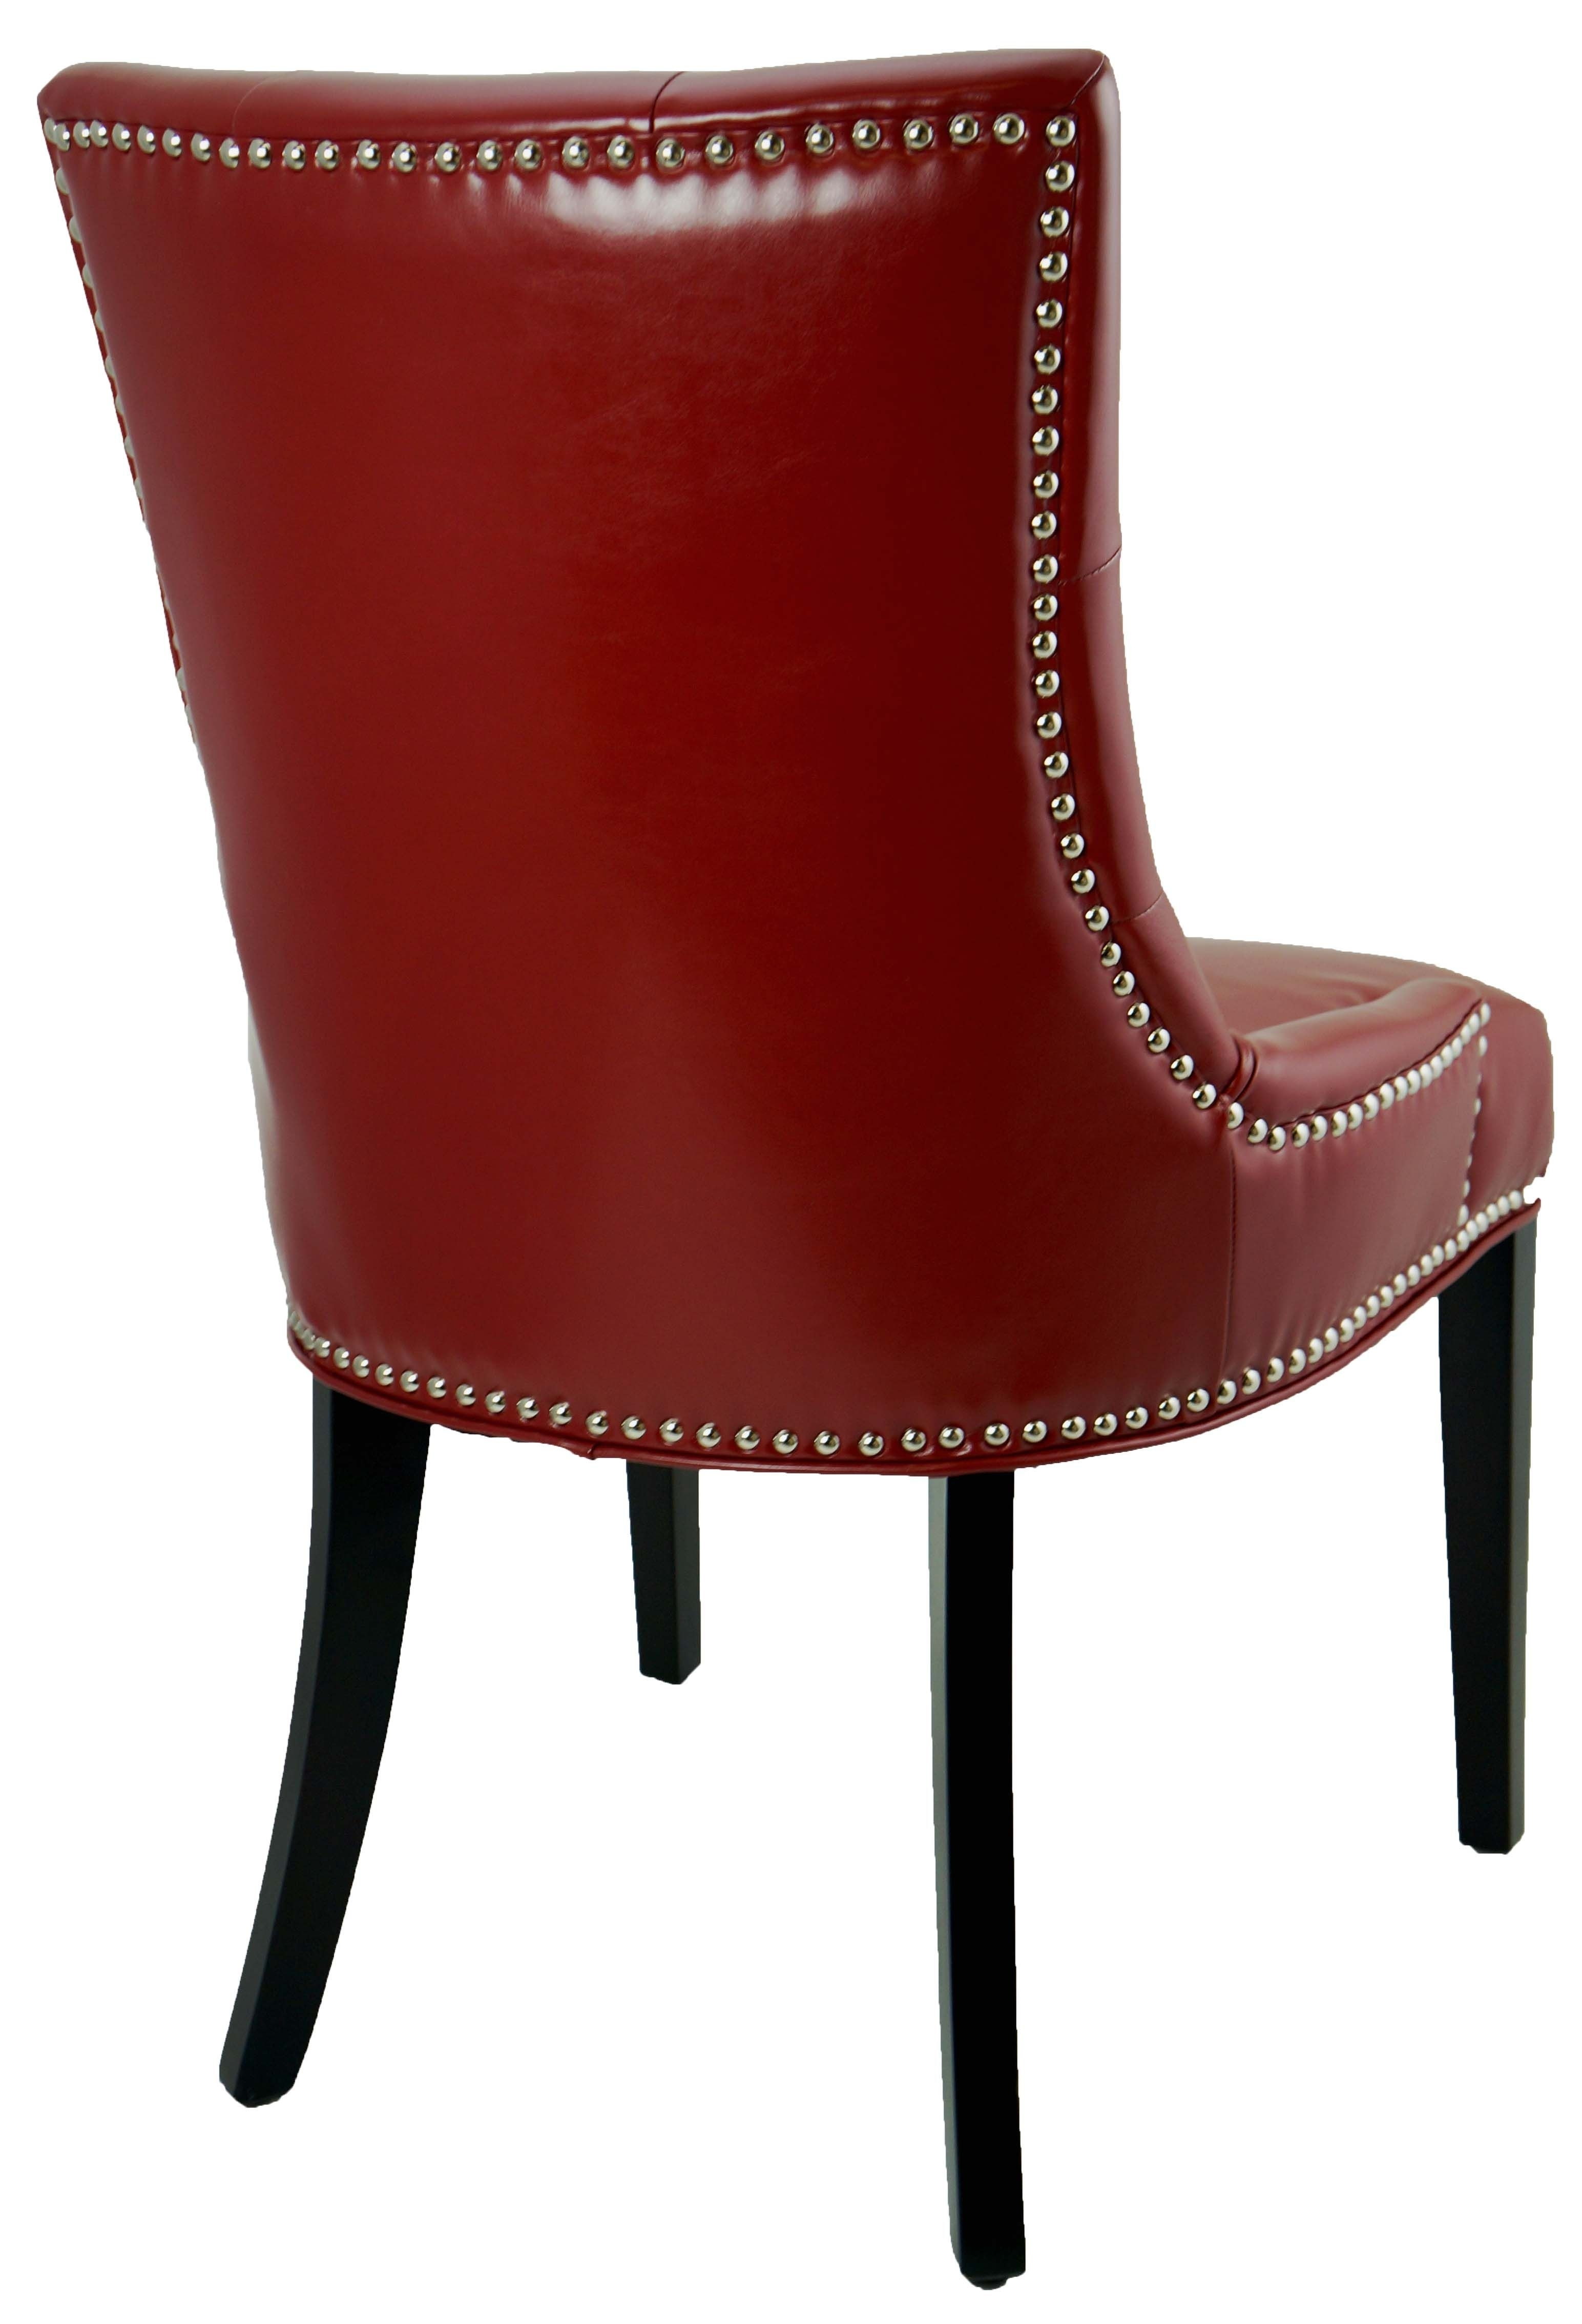 Famous Leather Parson, Dining Room & Kitchen Chairs :: Red Accent Tufted Pertaining To Red Leather Dining Chairs (View 2 of 25)